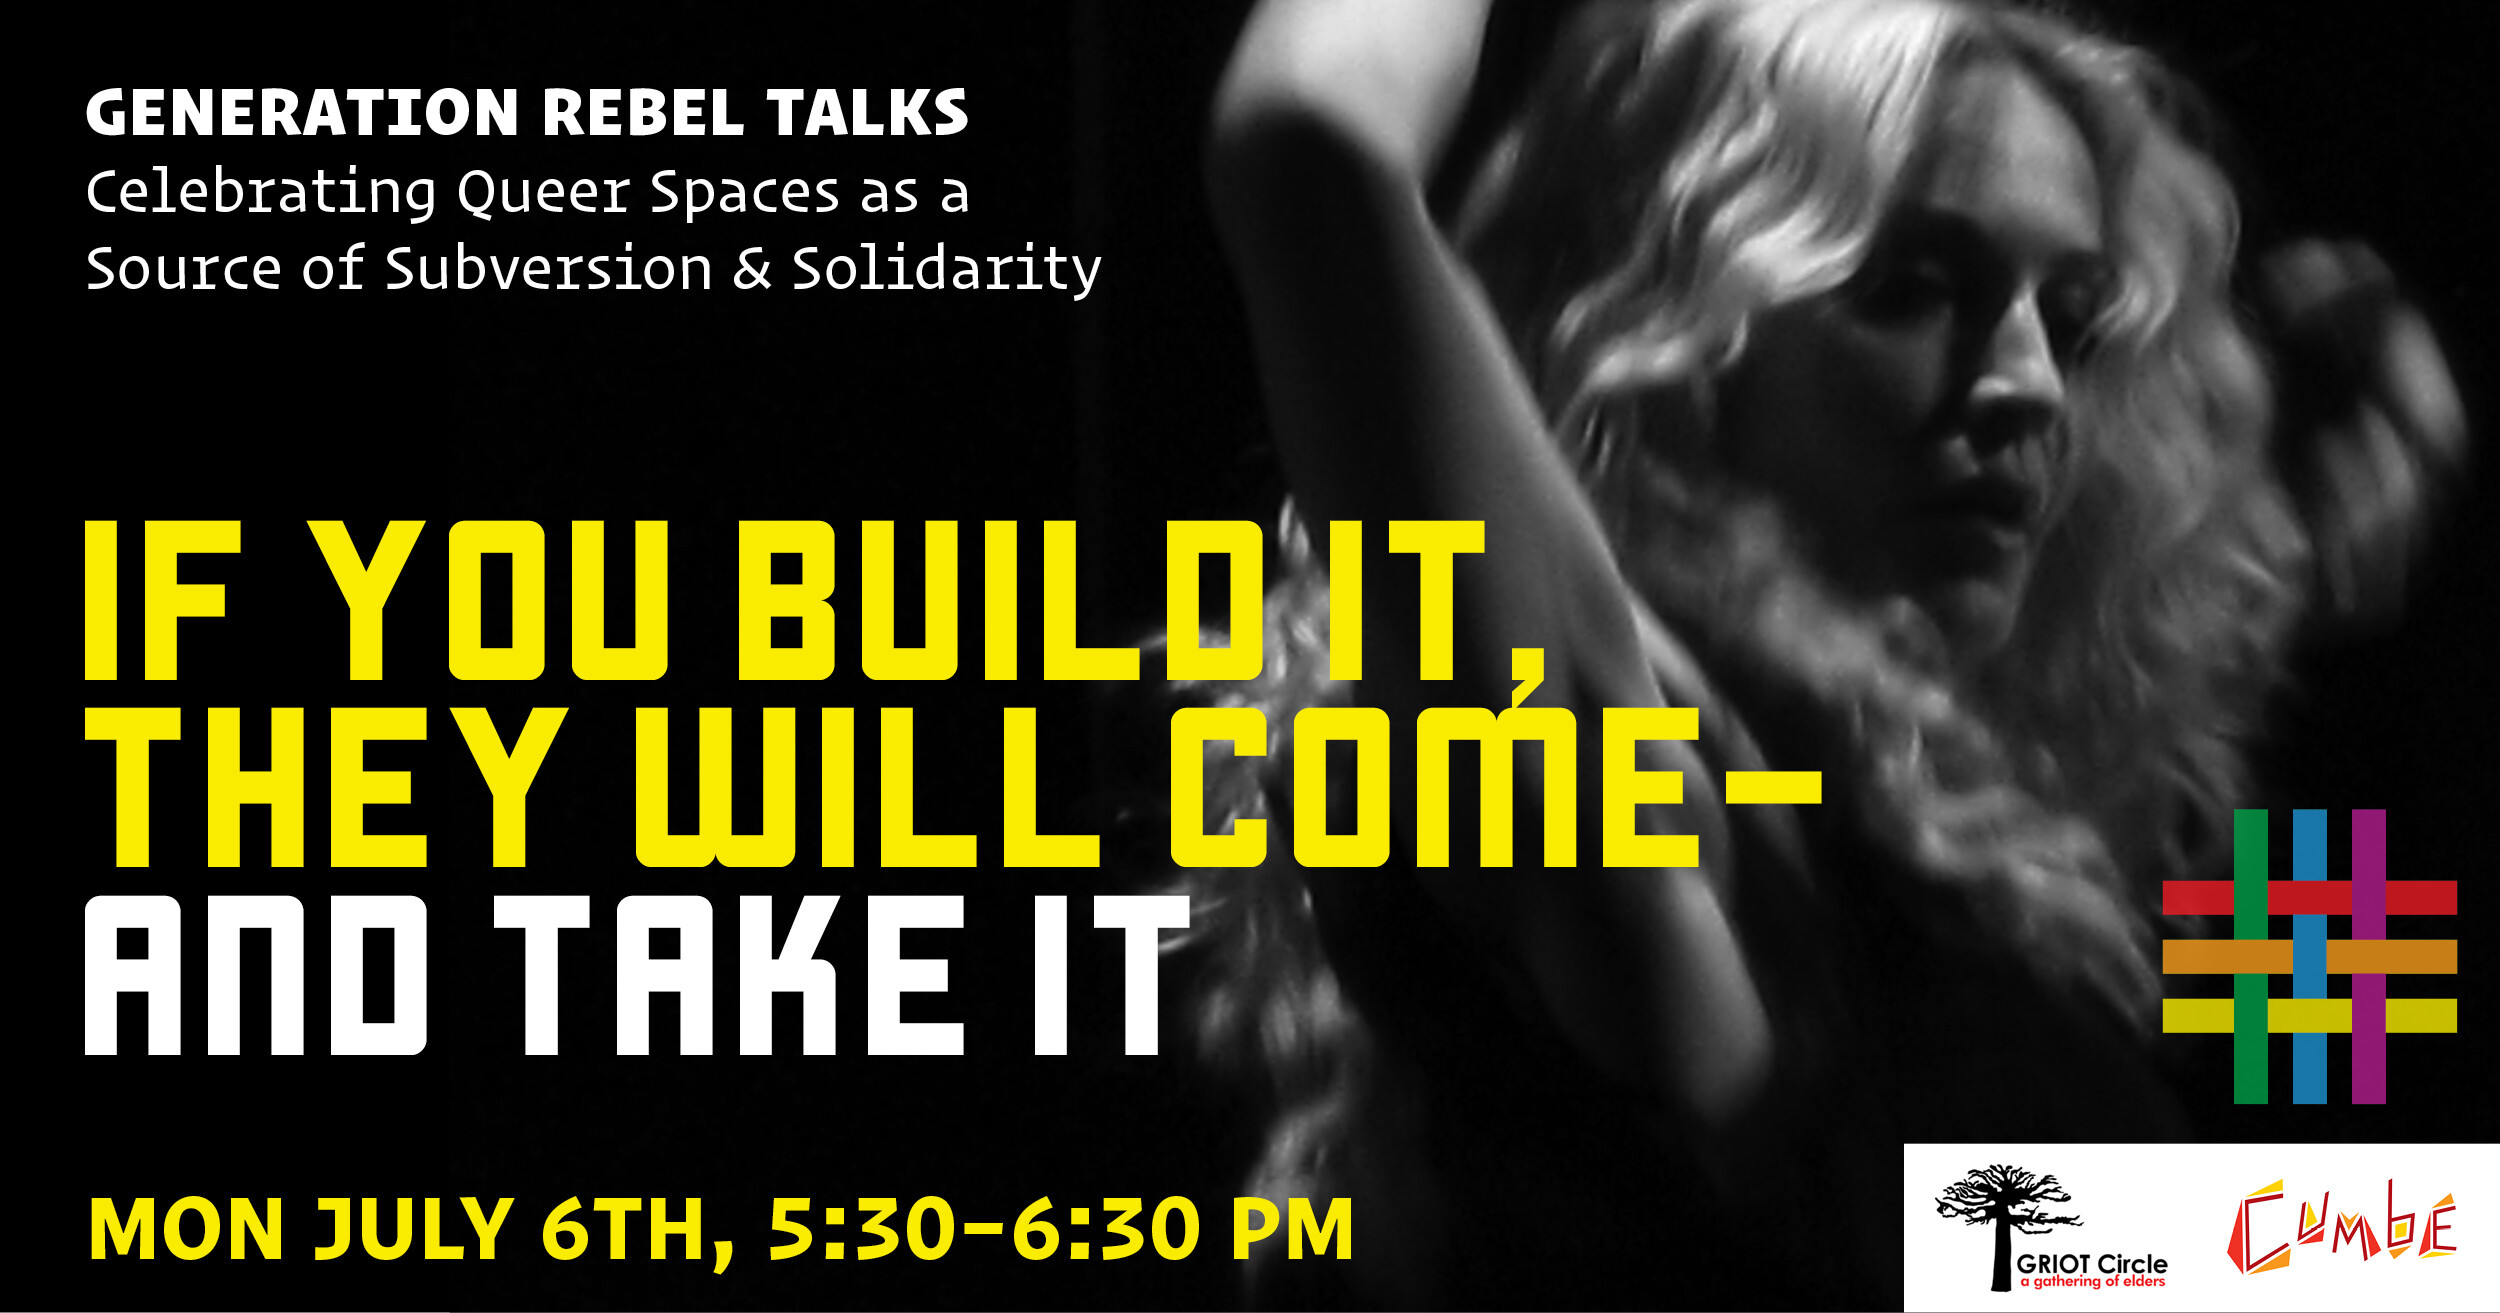 Generation Rebel Talks: If You Build It, They Will Come – And Take It